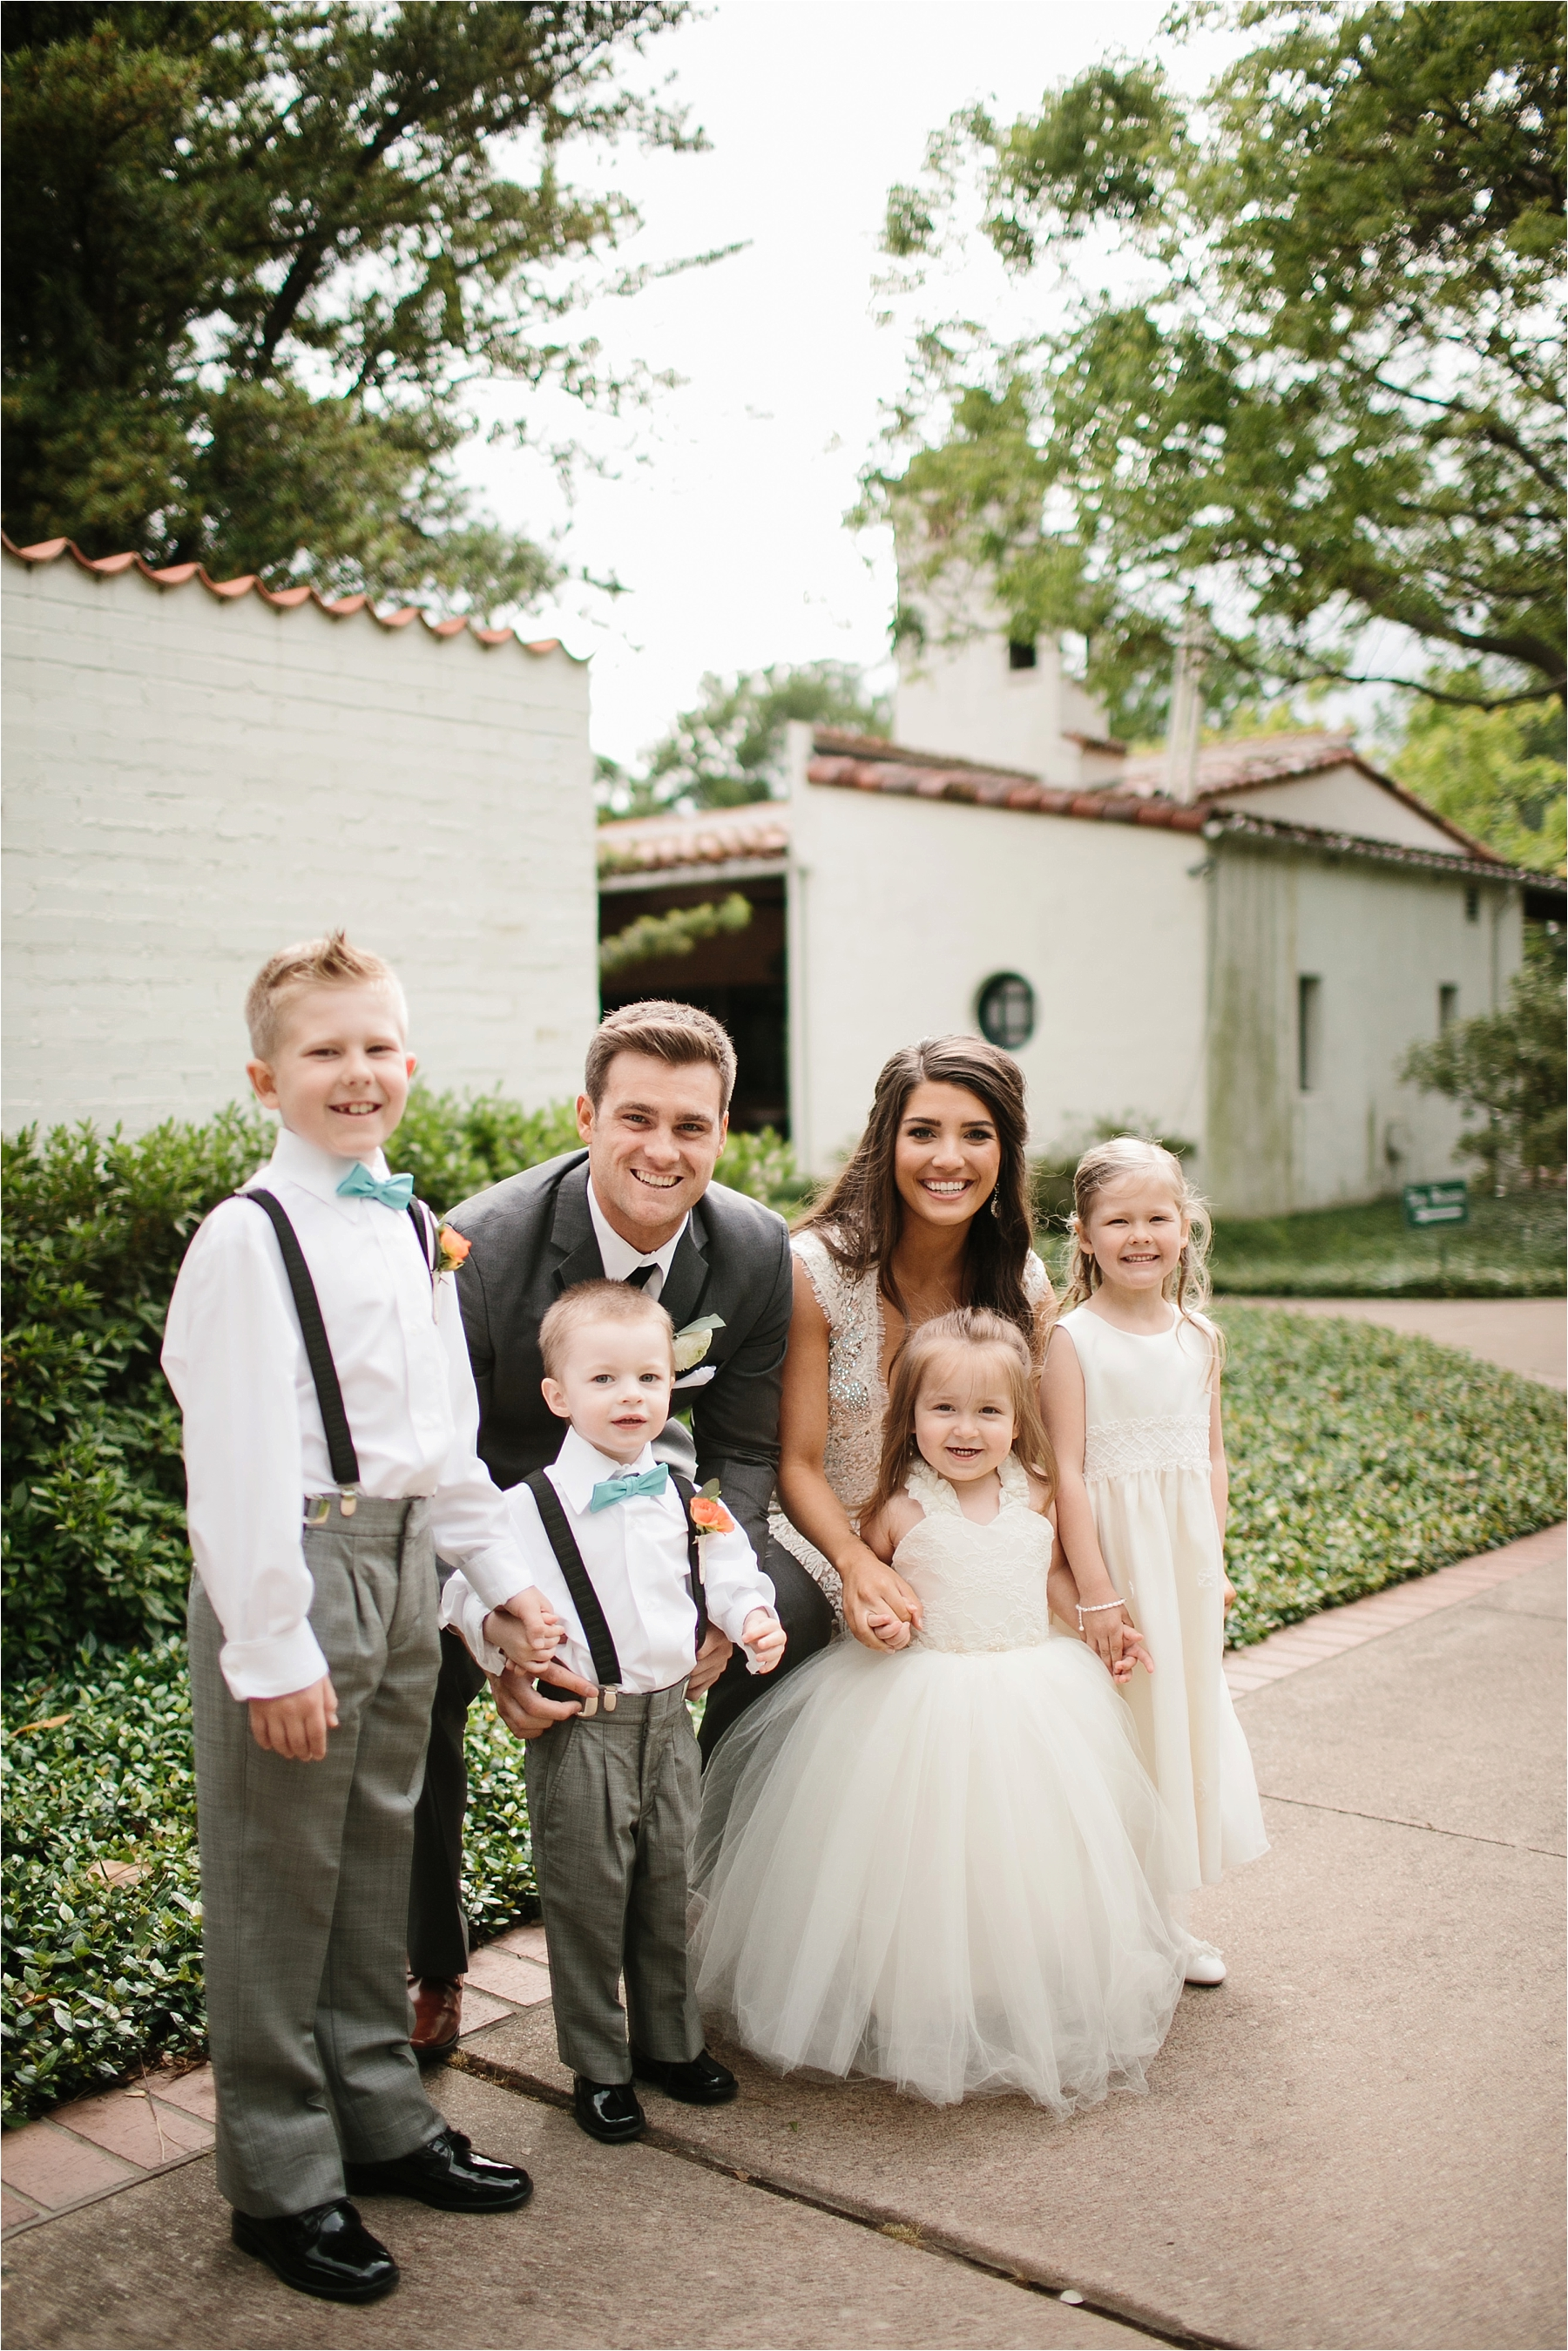 Devyn + Caden __ a Dallas Arboretum Garden Style Wedding by North Texas Wedding Photographer Rachel Meagan Photography __ 059